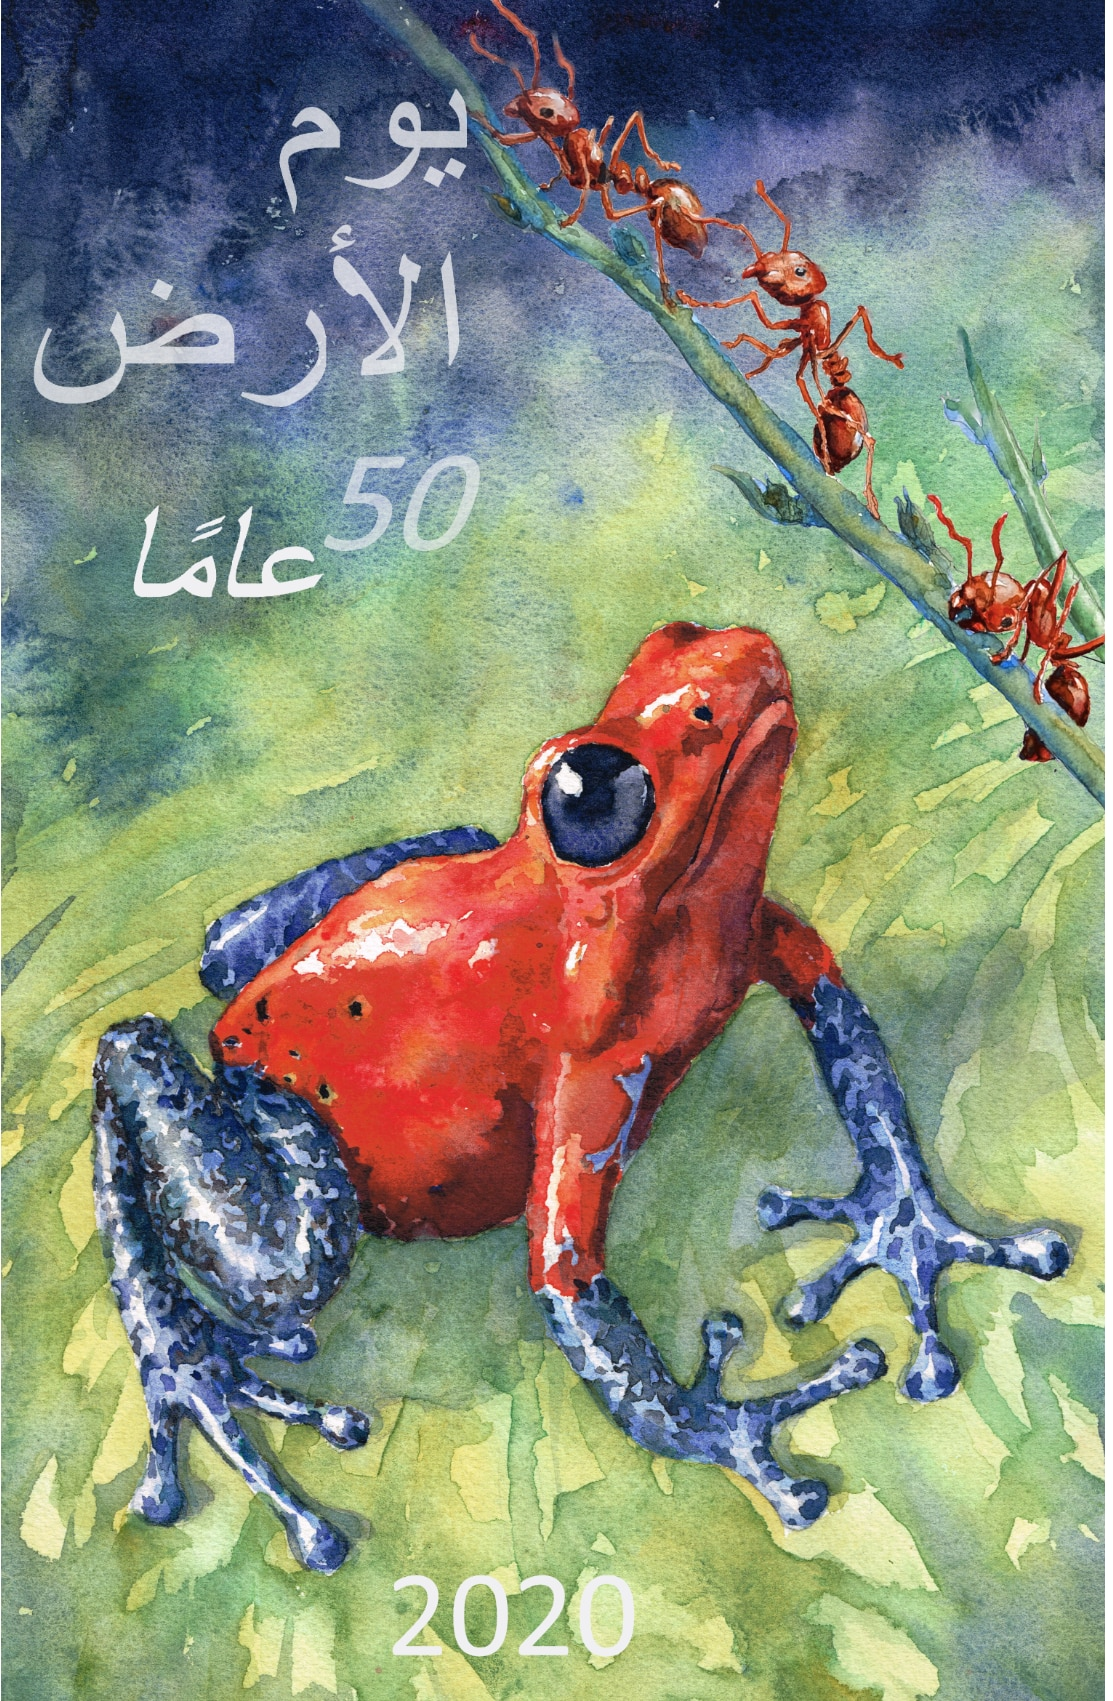 """Colorful environmental poster with illustration of red and blue frog looking at red ants on branch, with text saying """"Earth Day 50 years 2020"""" (State Dept./D. Thompson)"""